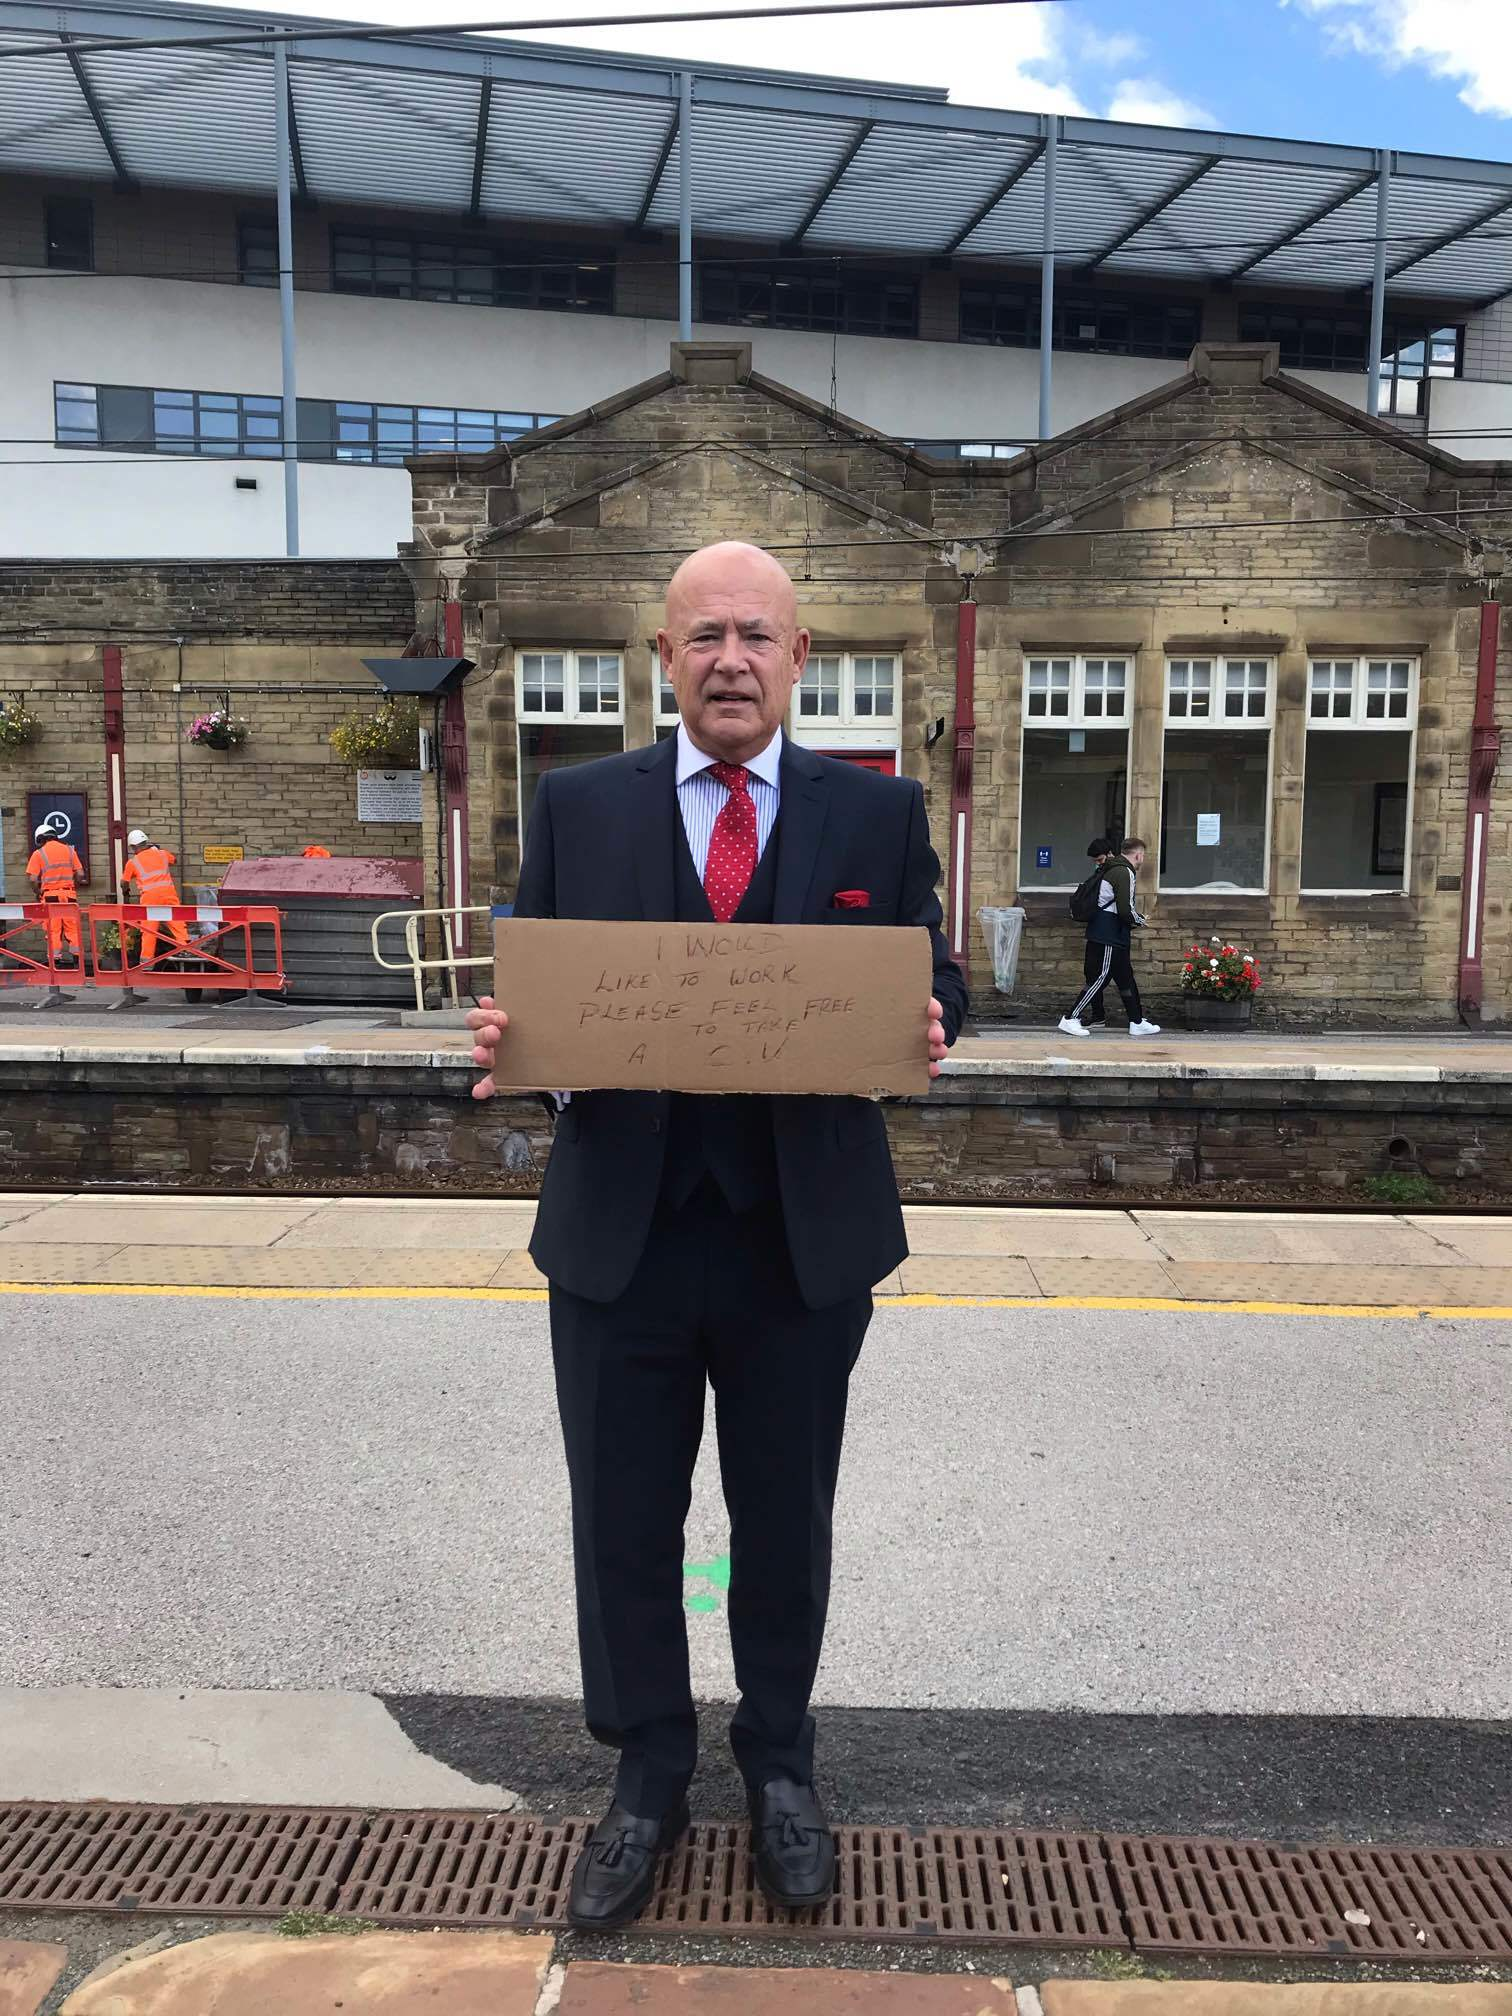 Keighley's Trevor Walford lands a job after handing out CVs at station | Bradford Telegraph and Argus